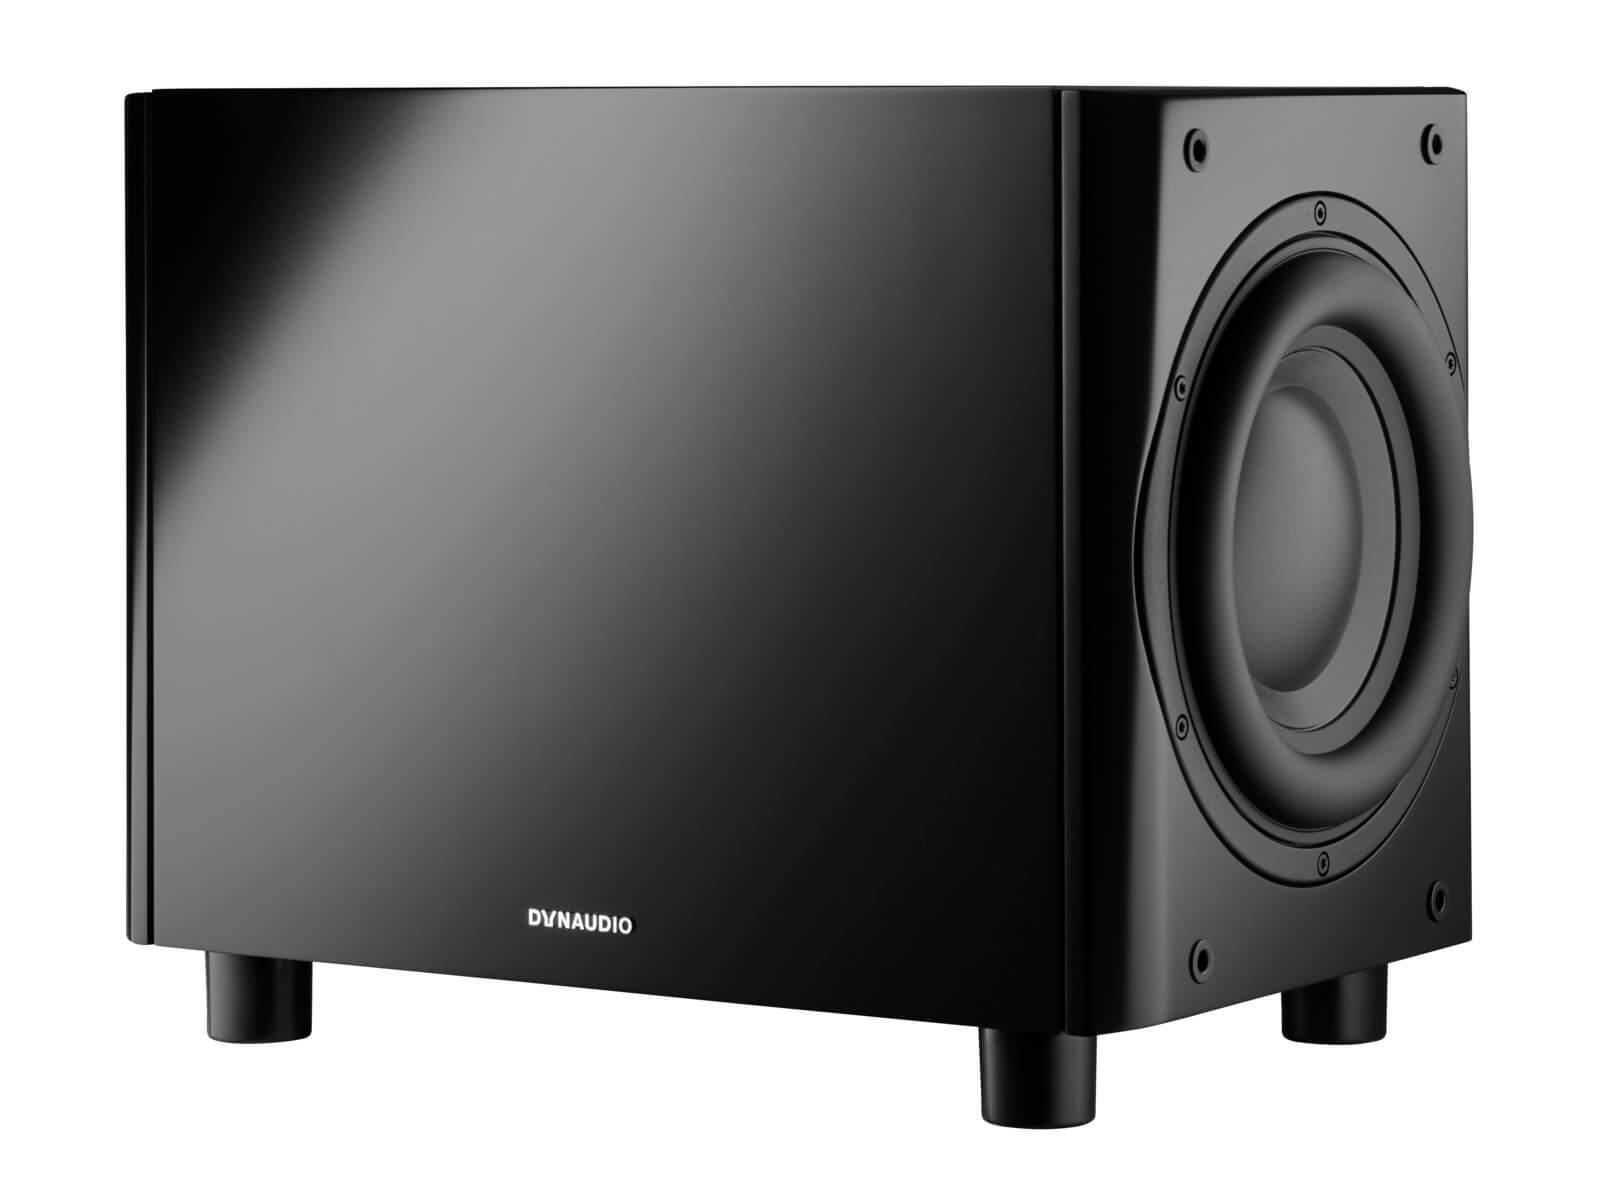 Dynaudio Sub 6 - Home Audio Subwoofer - Black